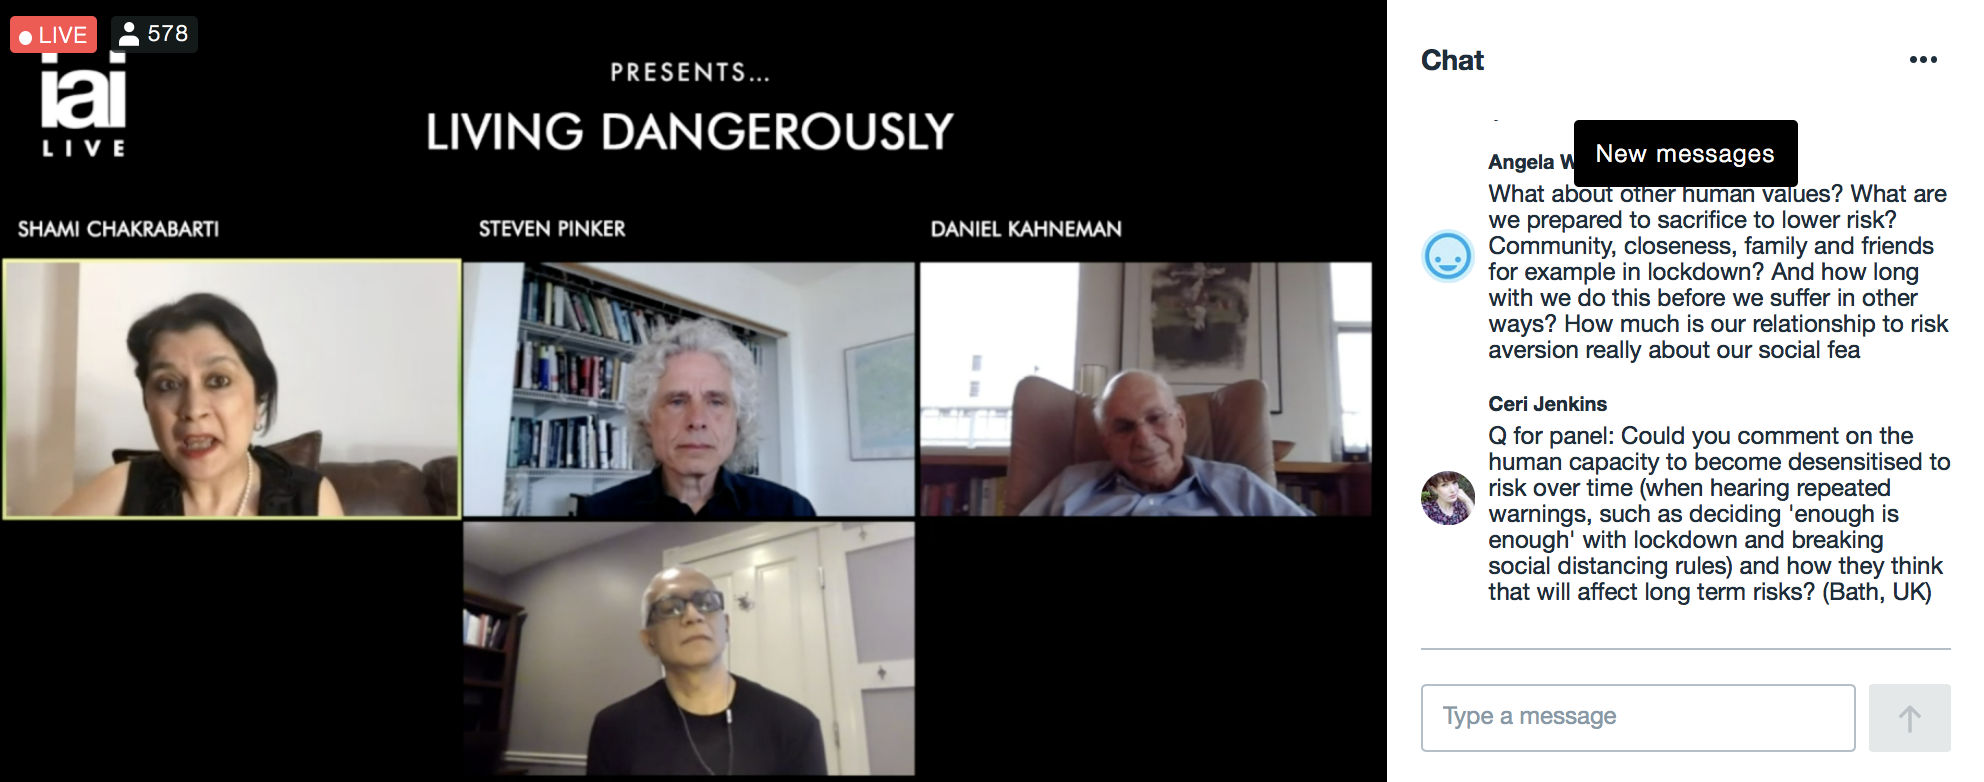 20 05 23.LIVING DANGEROUSLY.578views chat